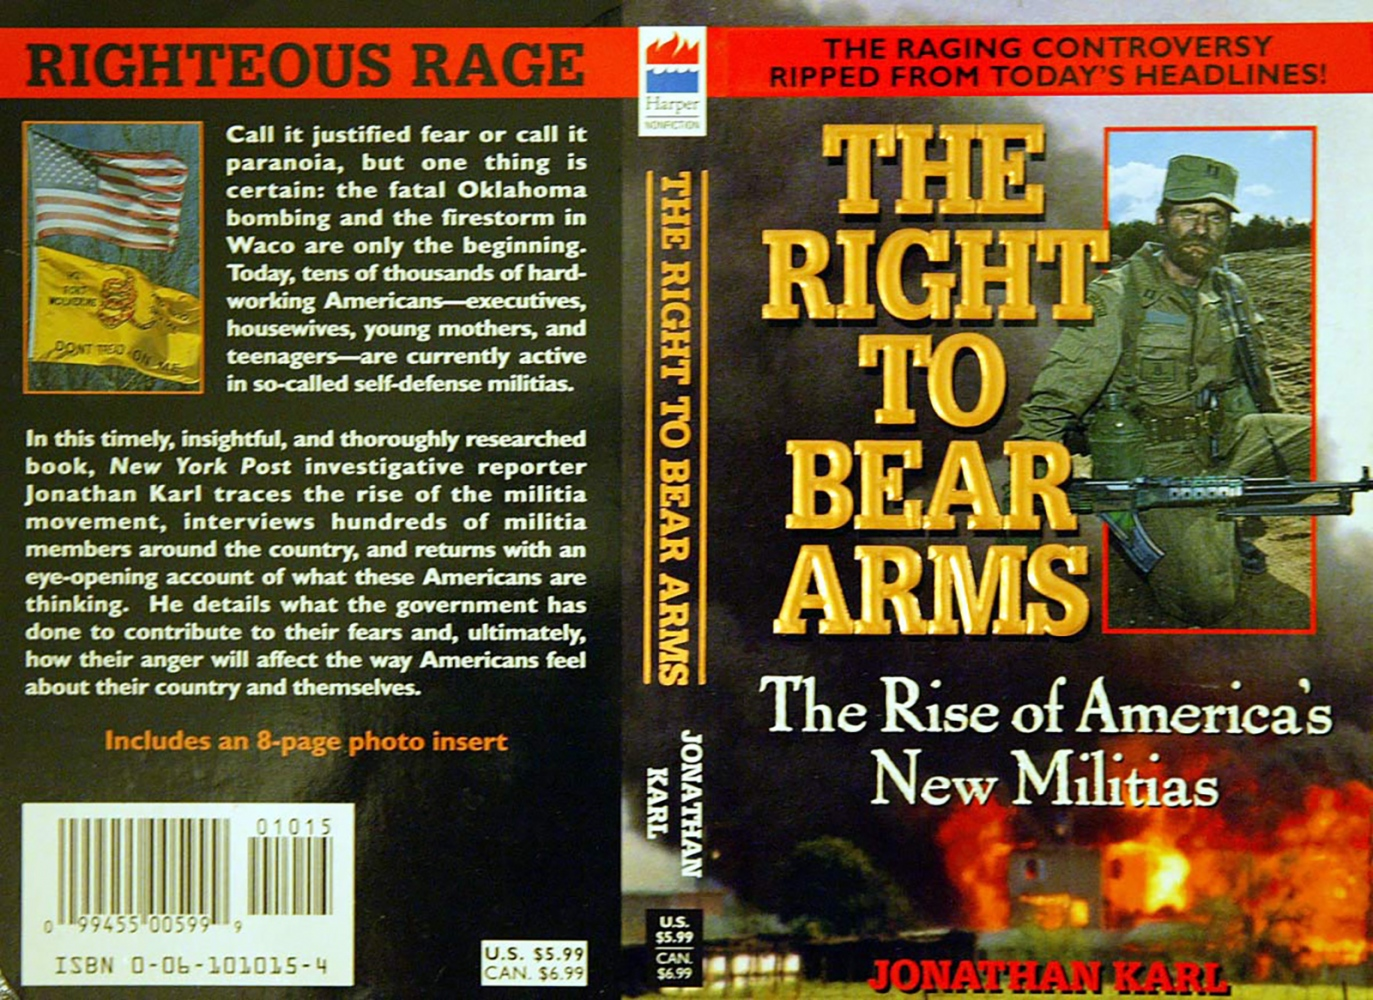 The Right to Bear Arms - The Rise of America's New Militia - Jonathan Karl   @ jonkarl